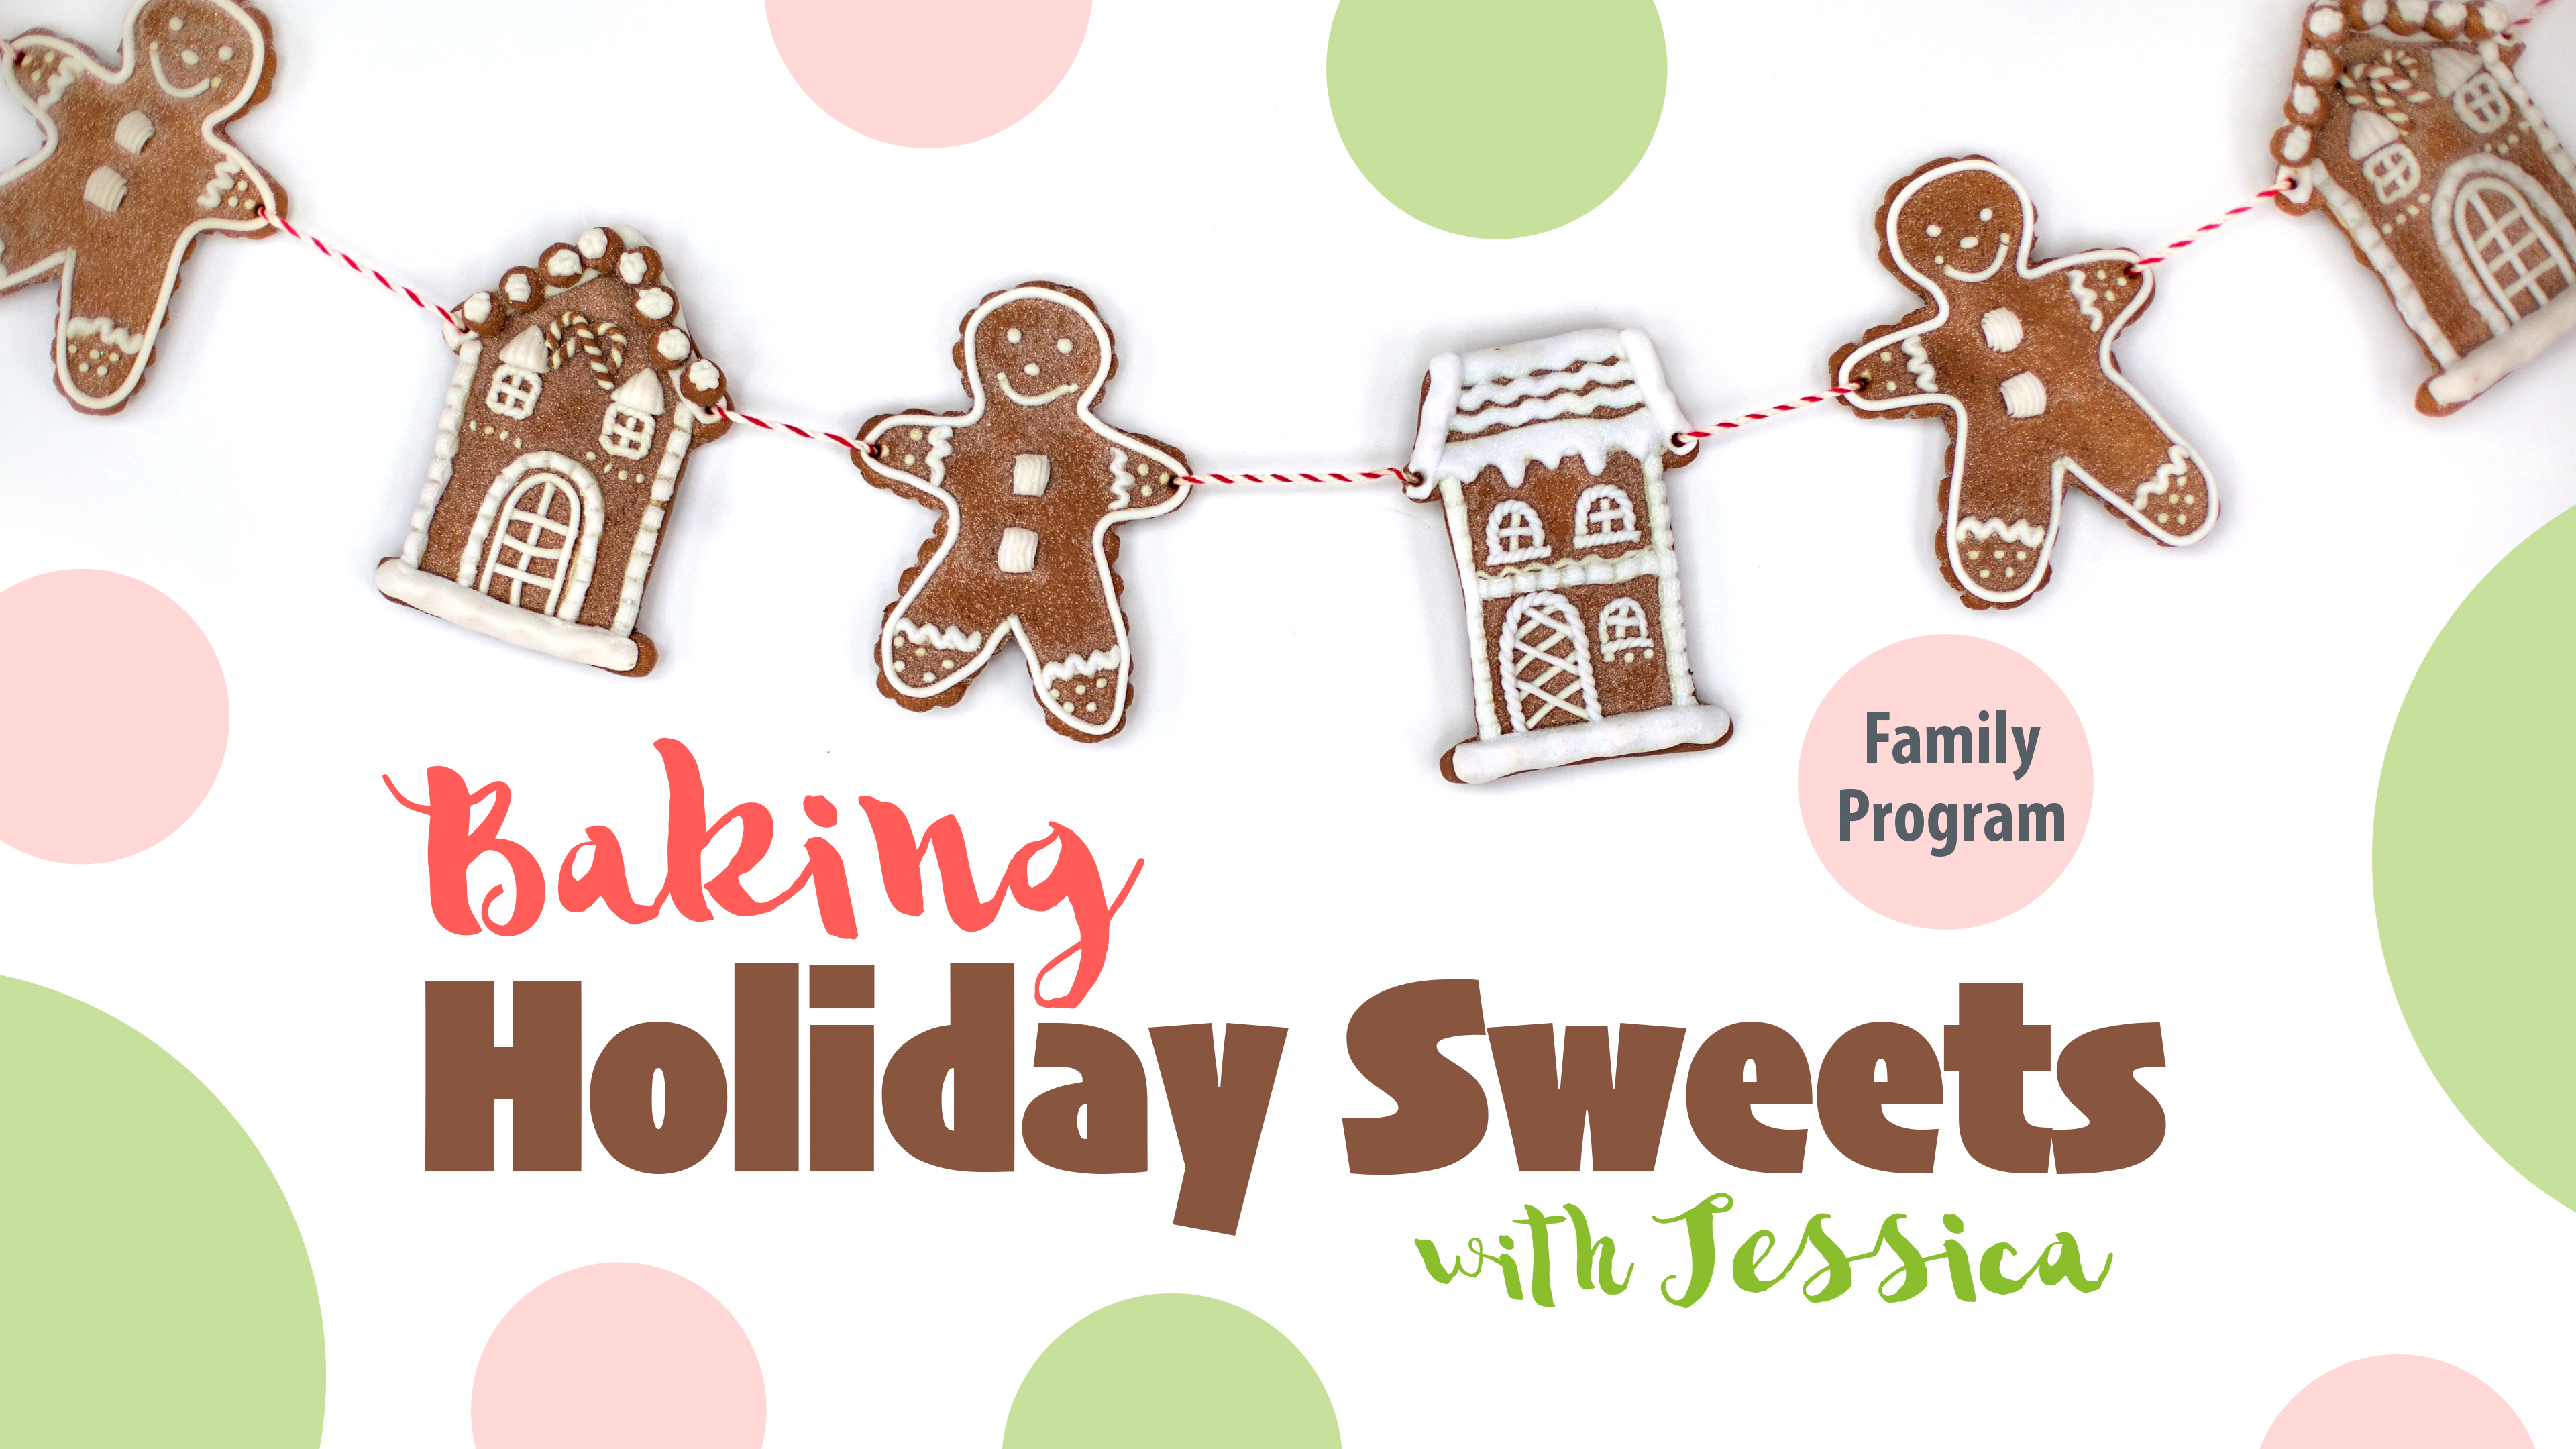 Baking Holiday Sweets with Jessica